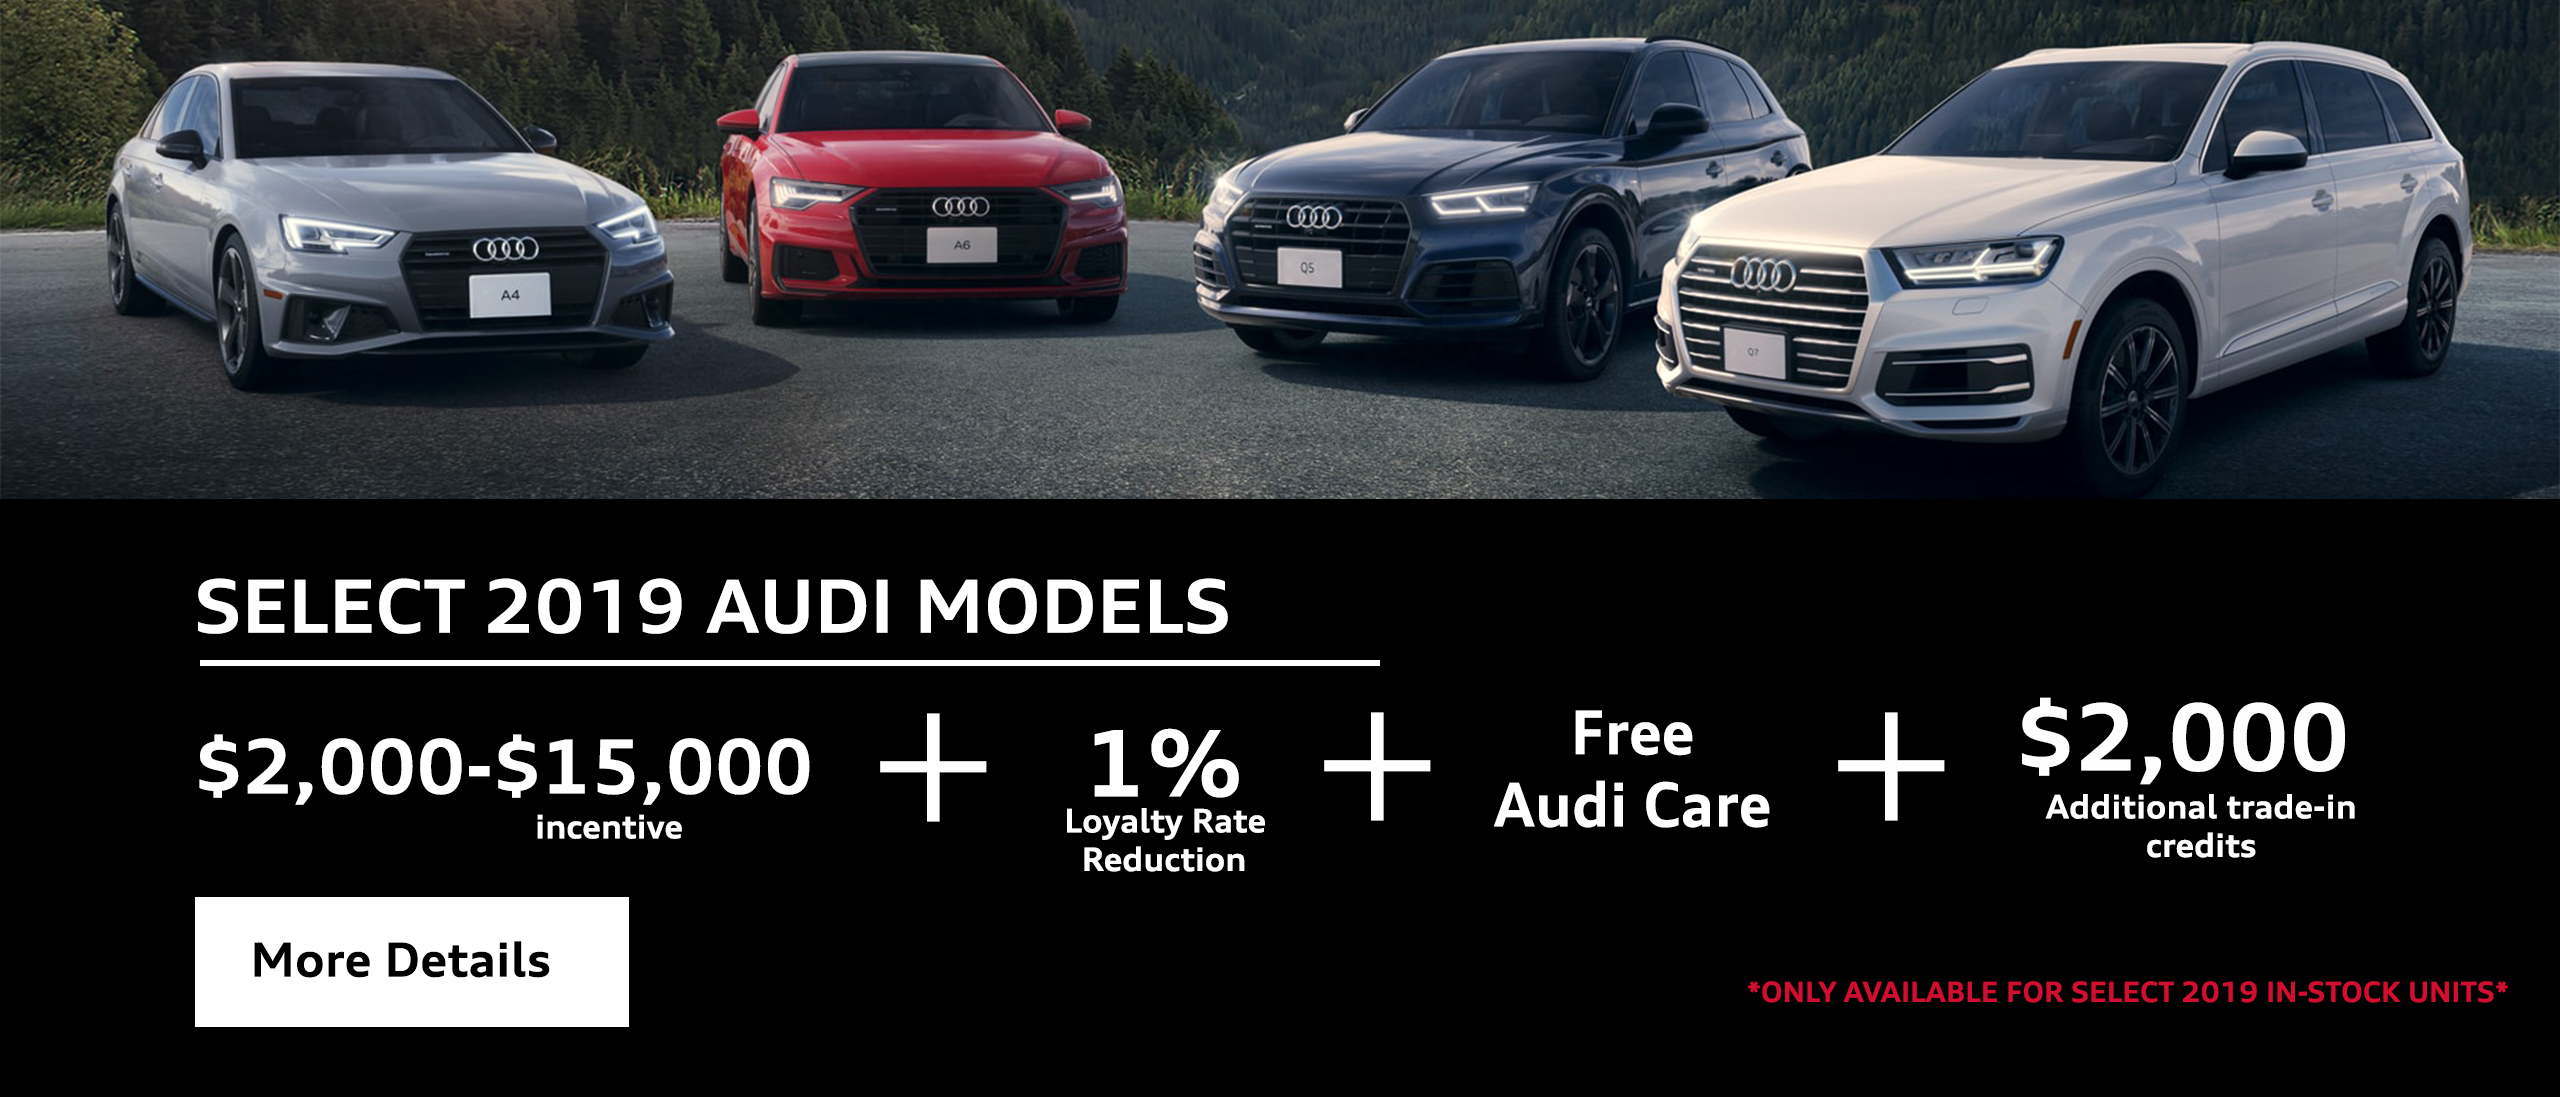 Southgate Audi | Find New & Used Audi Car, SUVs, & Coupes